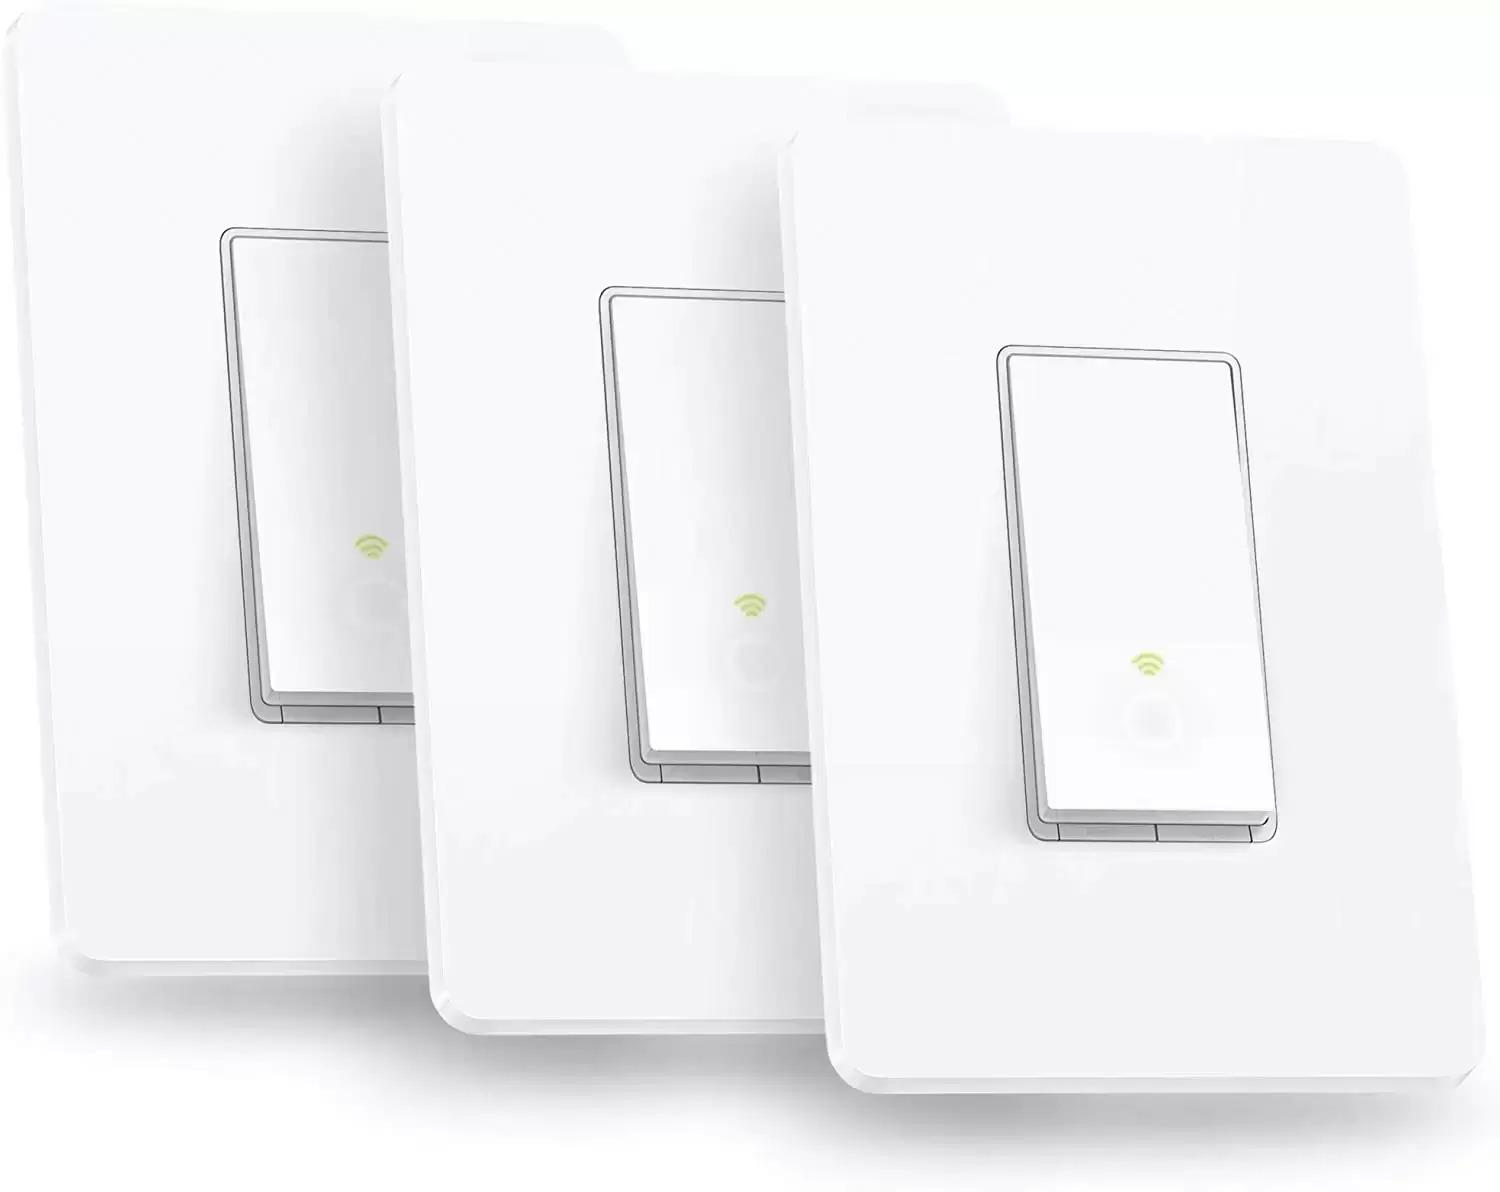 3 TP-Link Kasa Smart HS200P3 WiFi In-Wall Lighting Switch for $34.99 Shipped